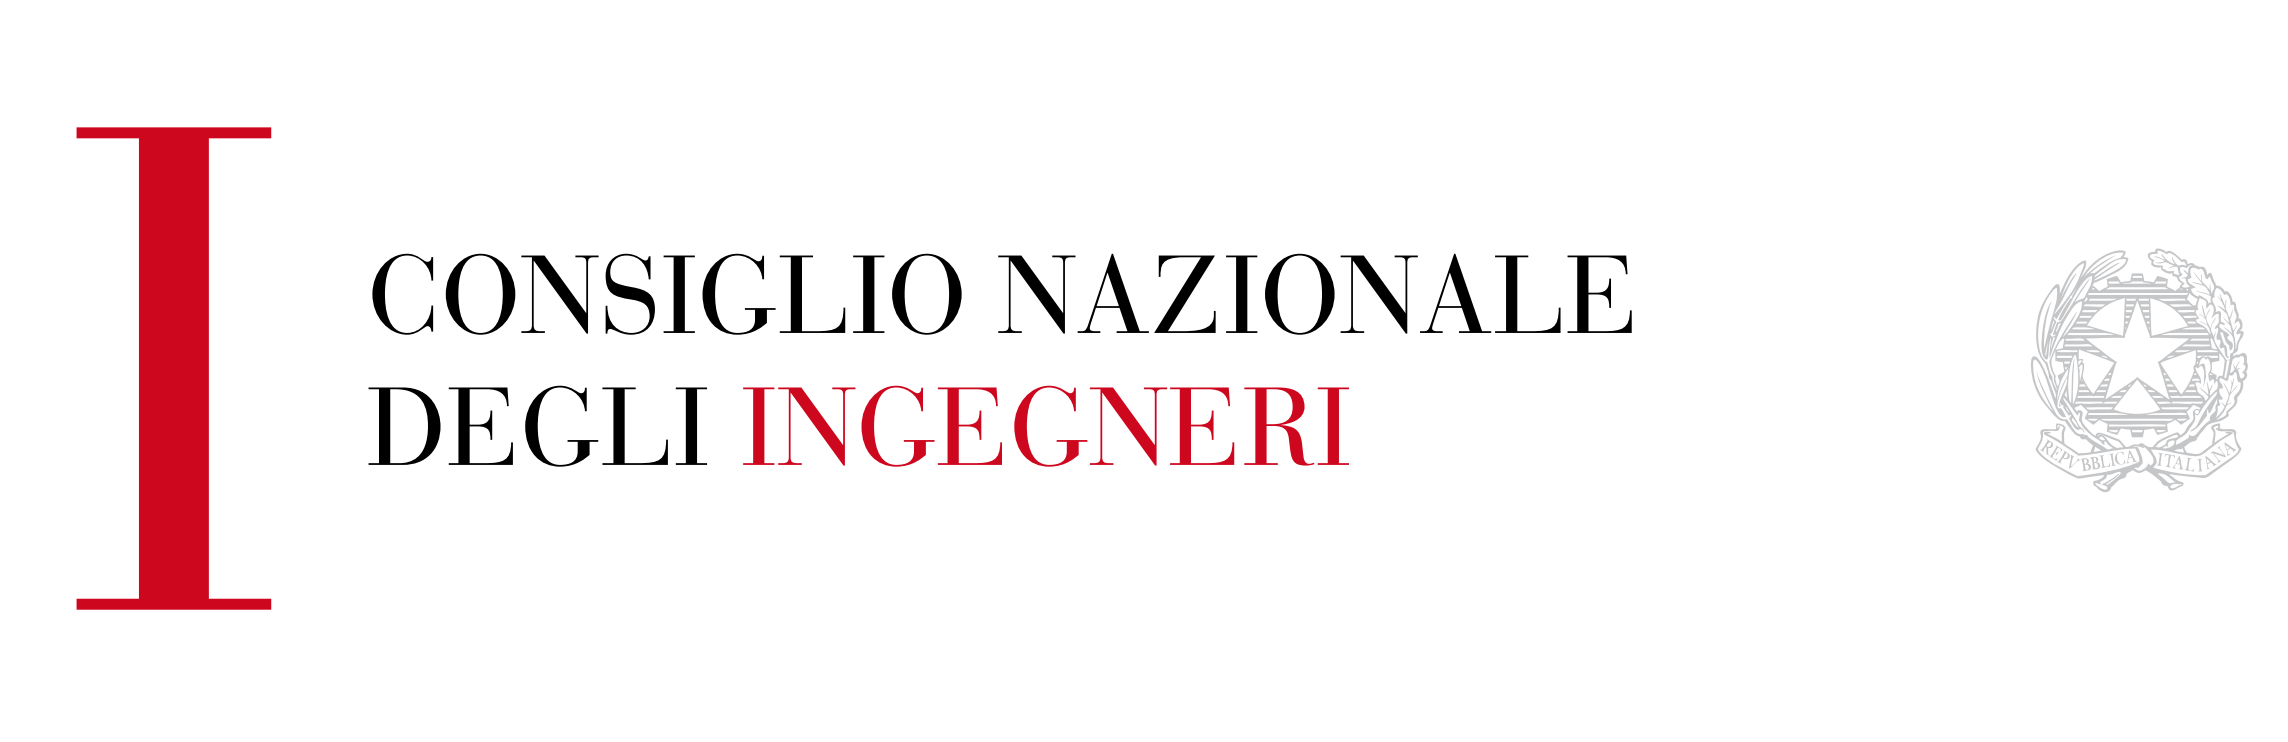 Consiglio Nazionale degli Ingegneri - National council of engineers